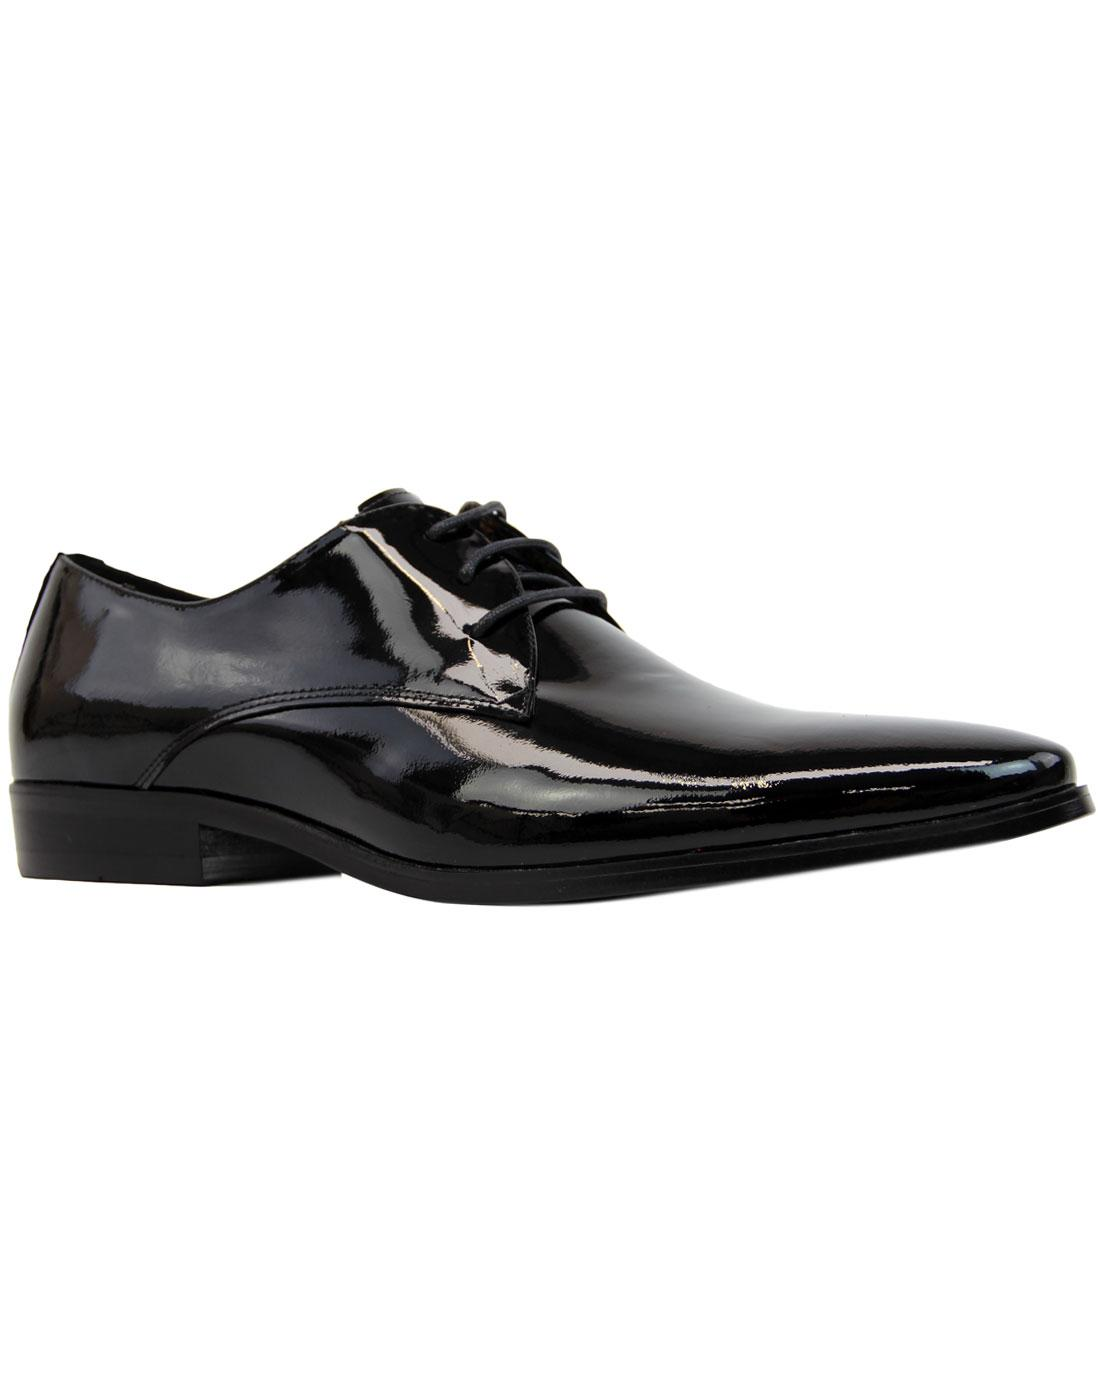 Sai Lace PAOLO VANDINI Patent Leather Dress Shoes